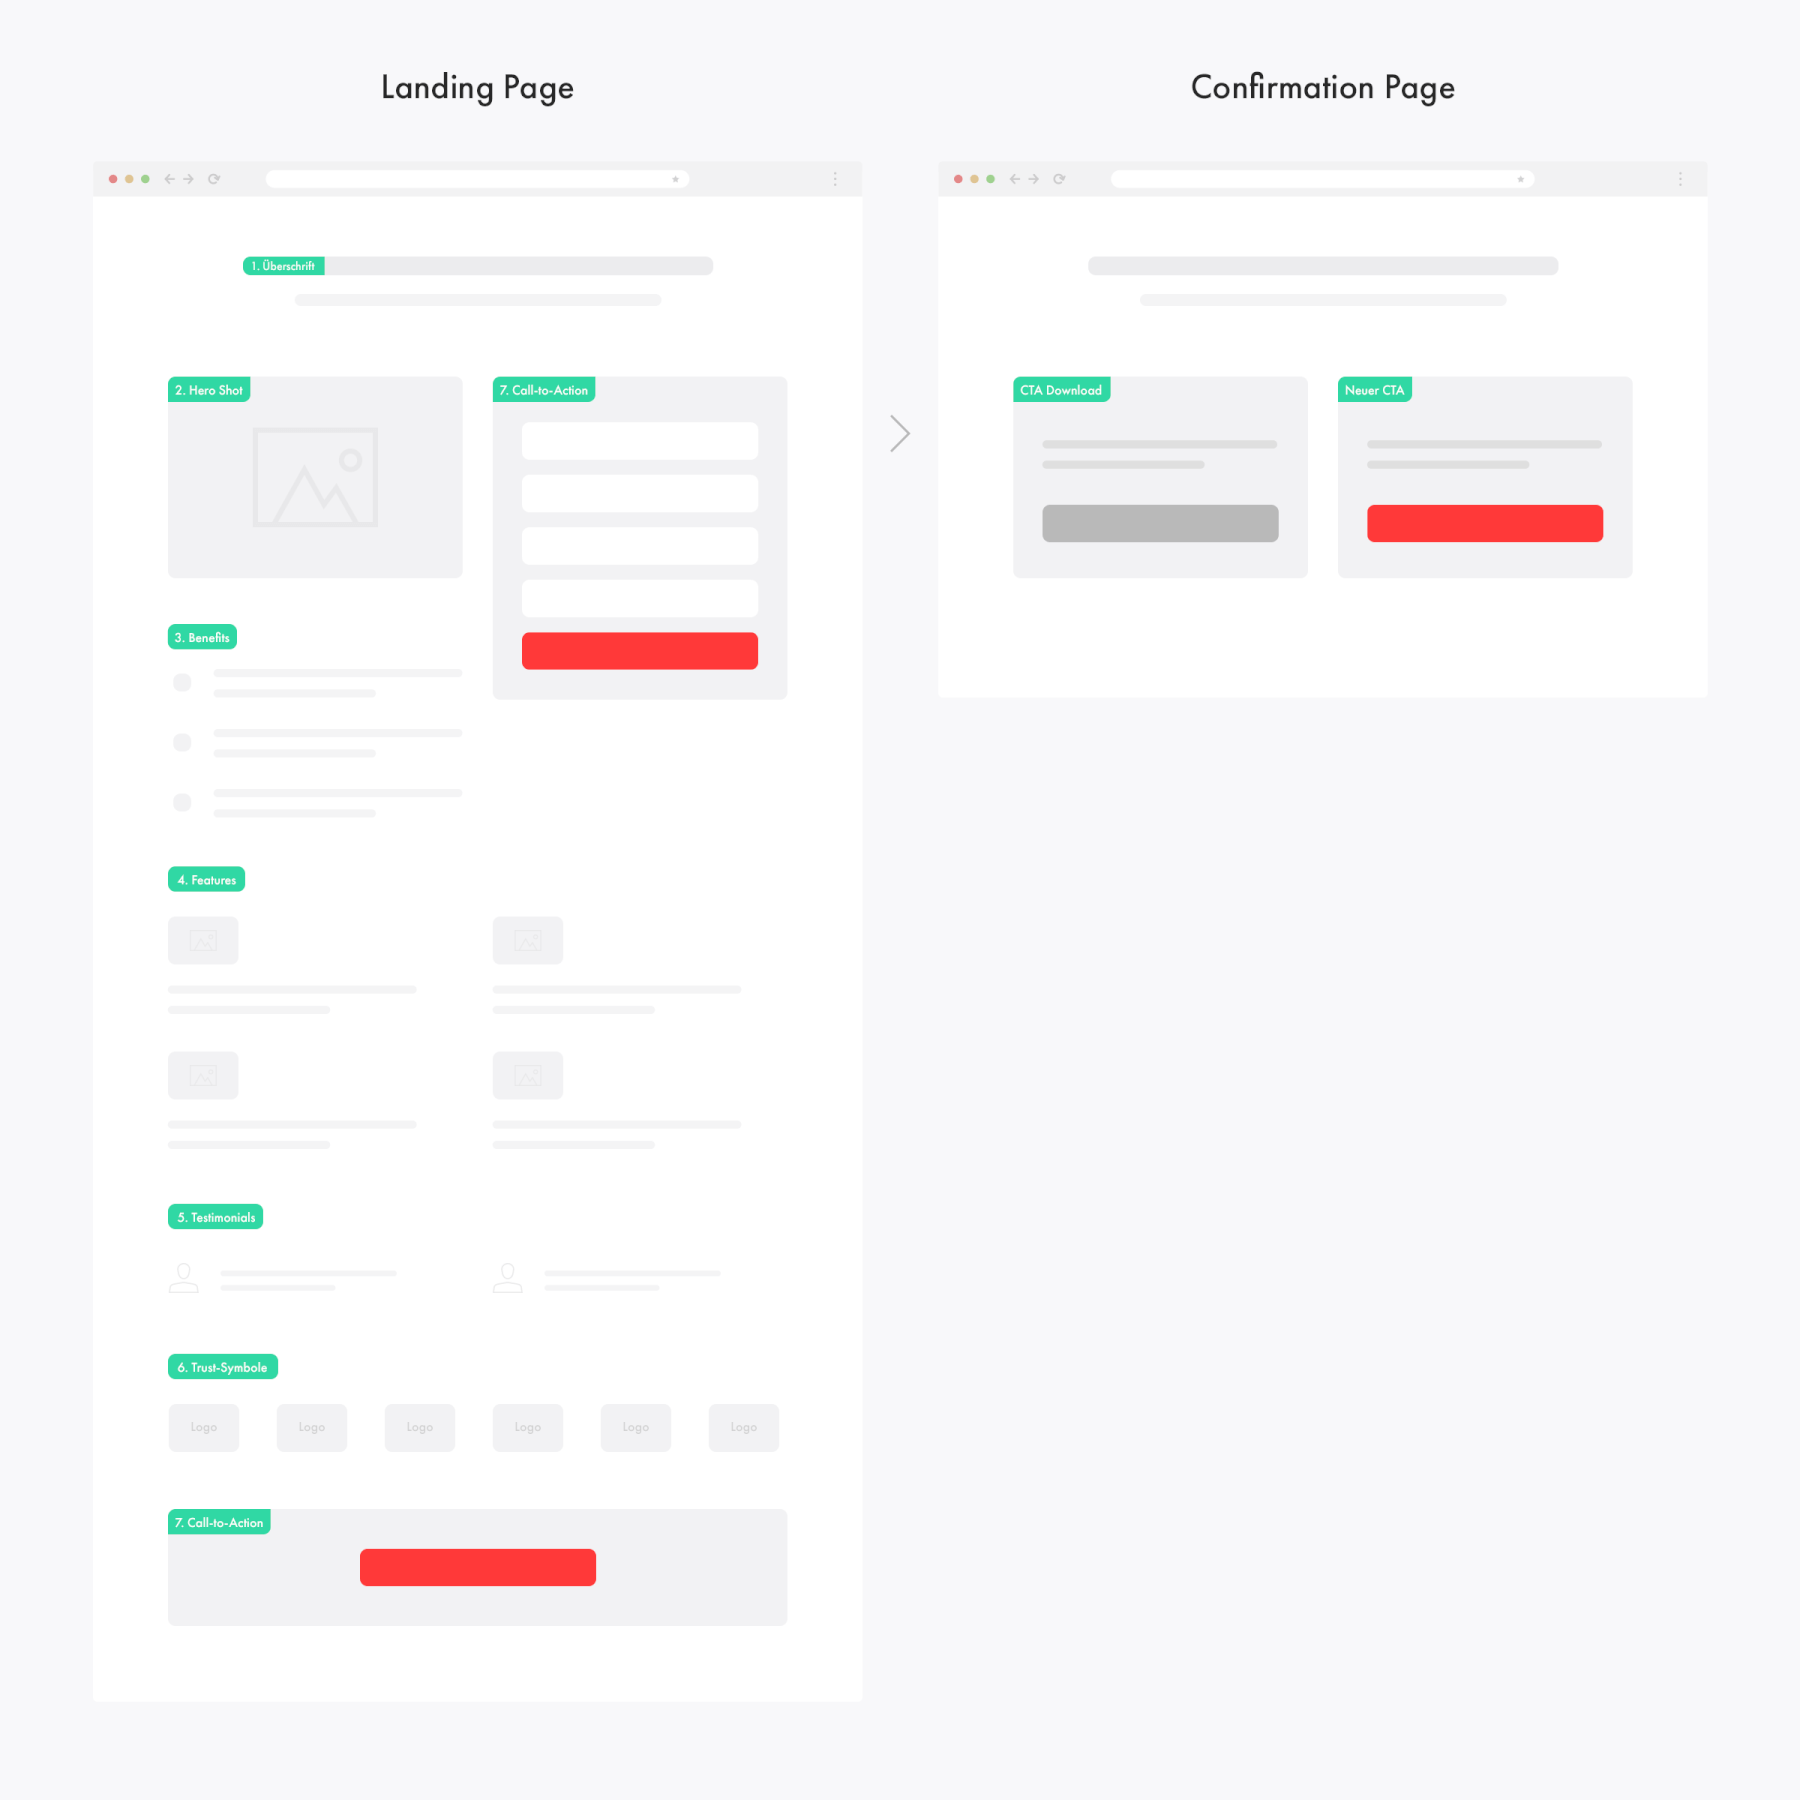 landing page confirmation page